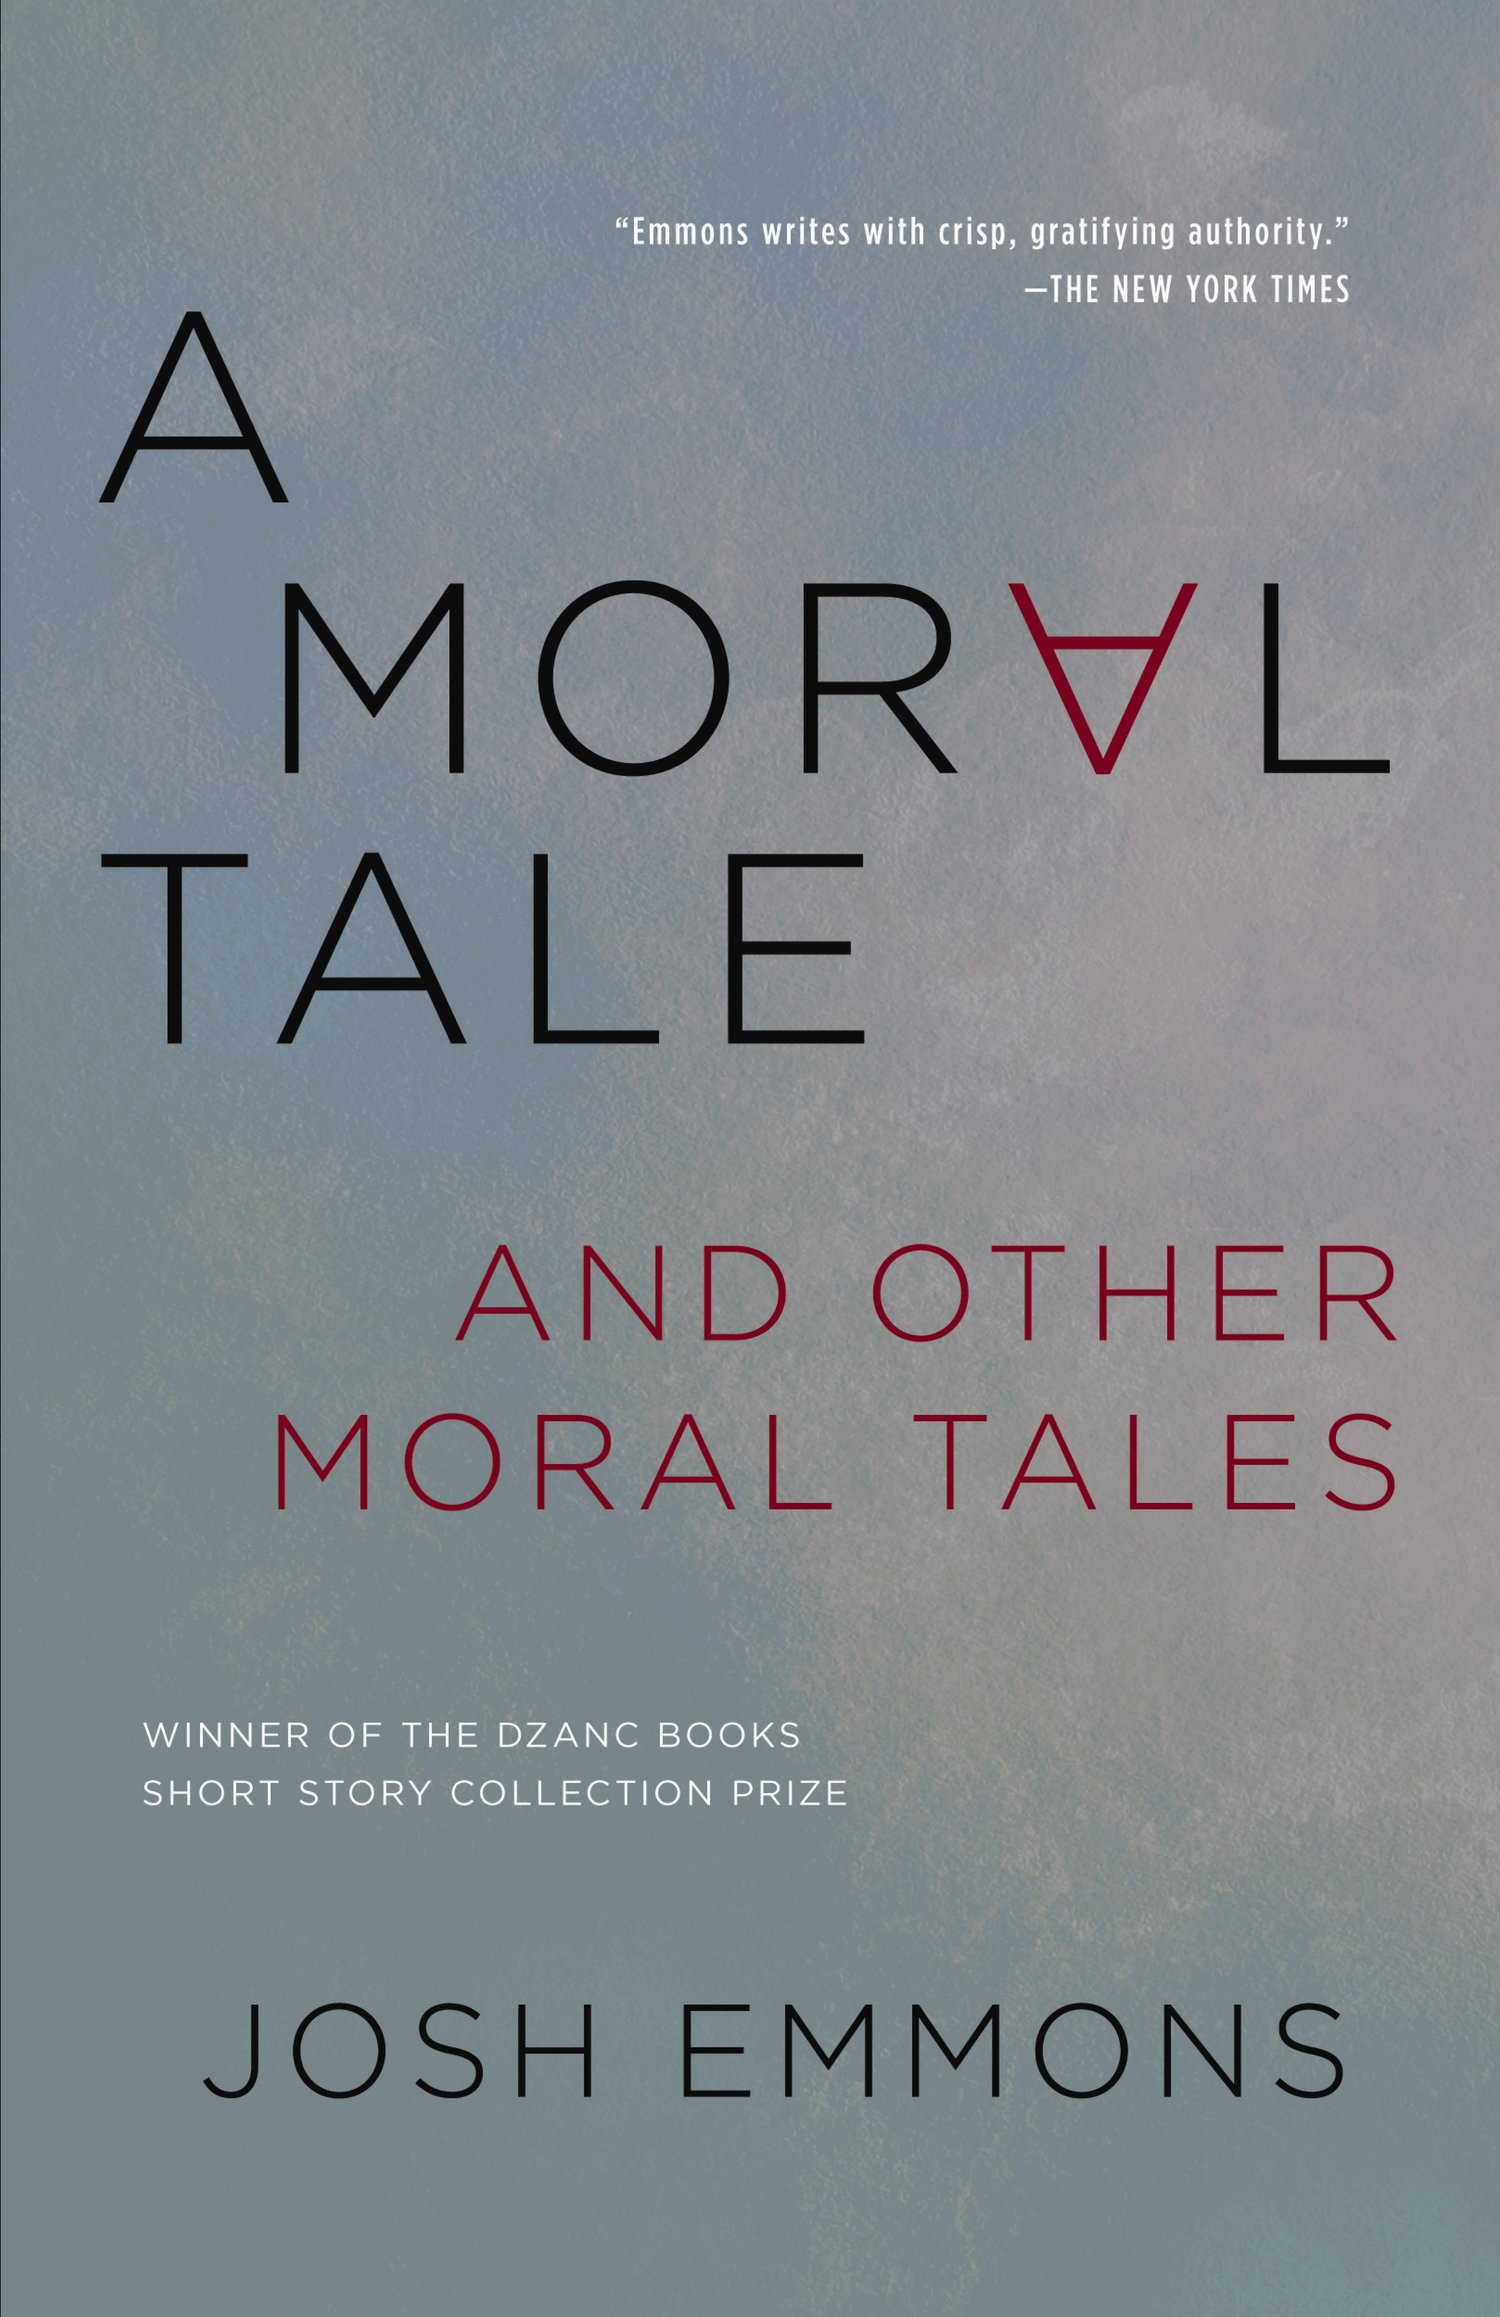 A Moral Tale and Other Moral Stories by Josh Emmons — Dzanc Books